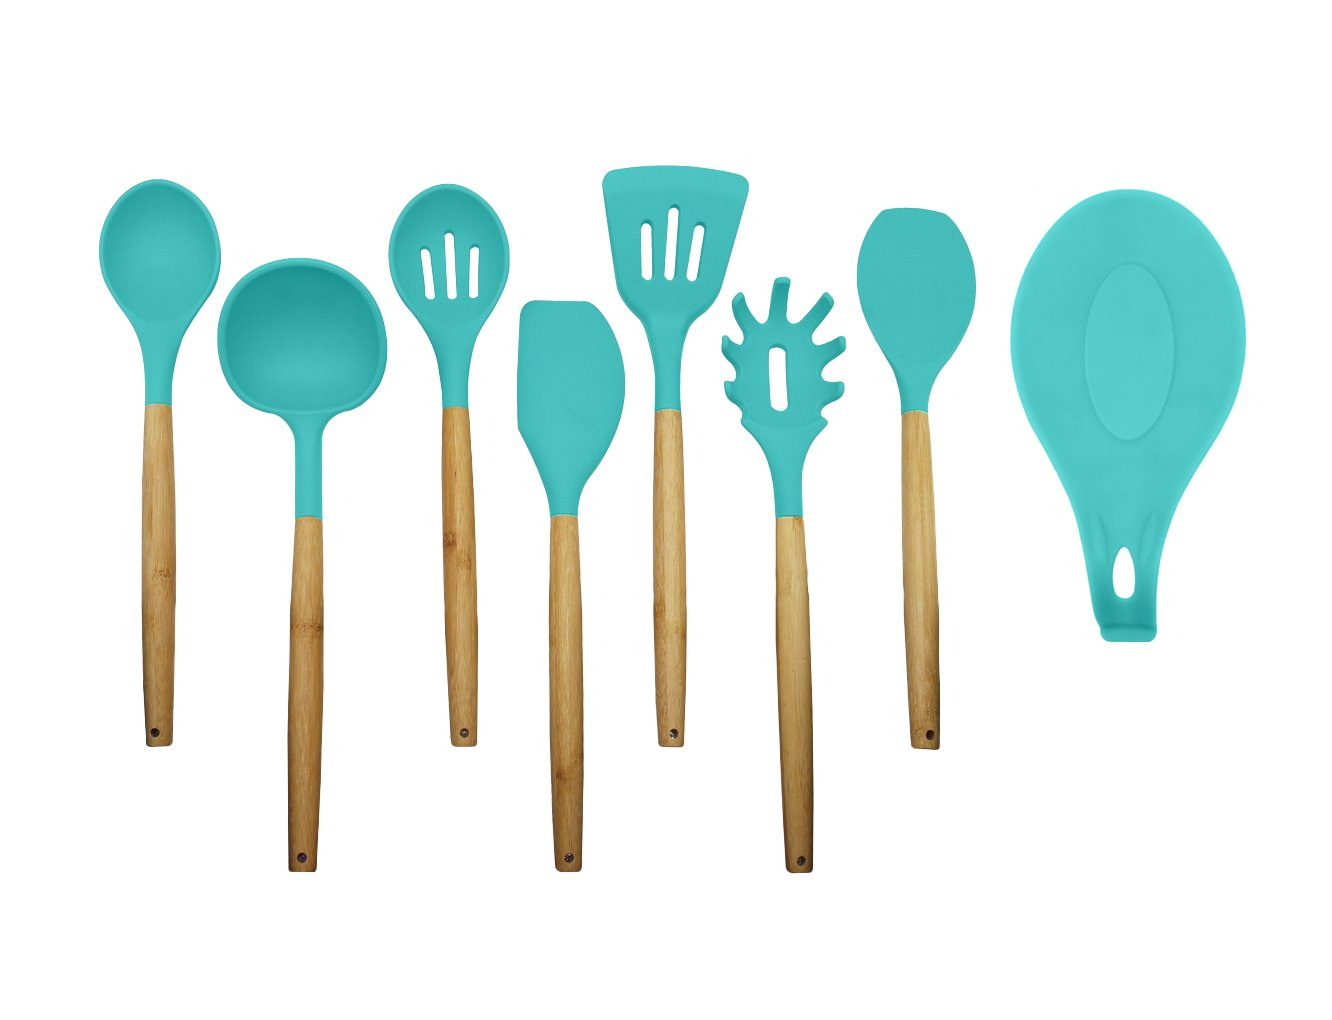 Amazon.com: Kitchen Utensils - Silicone and Wooden Spoons - 9 Pieces ...